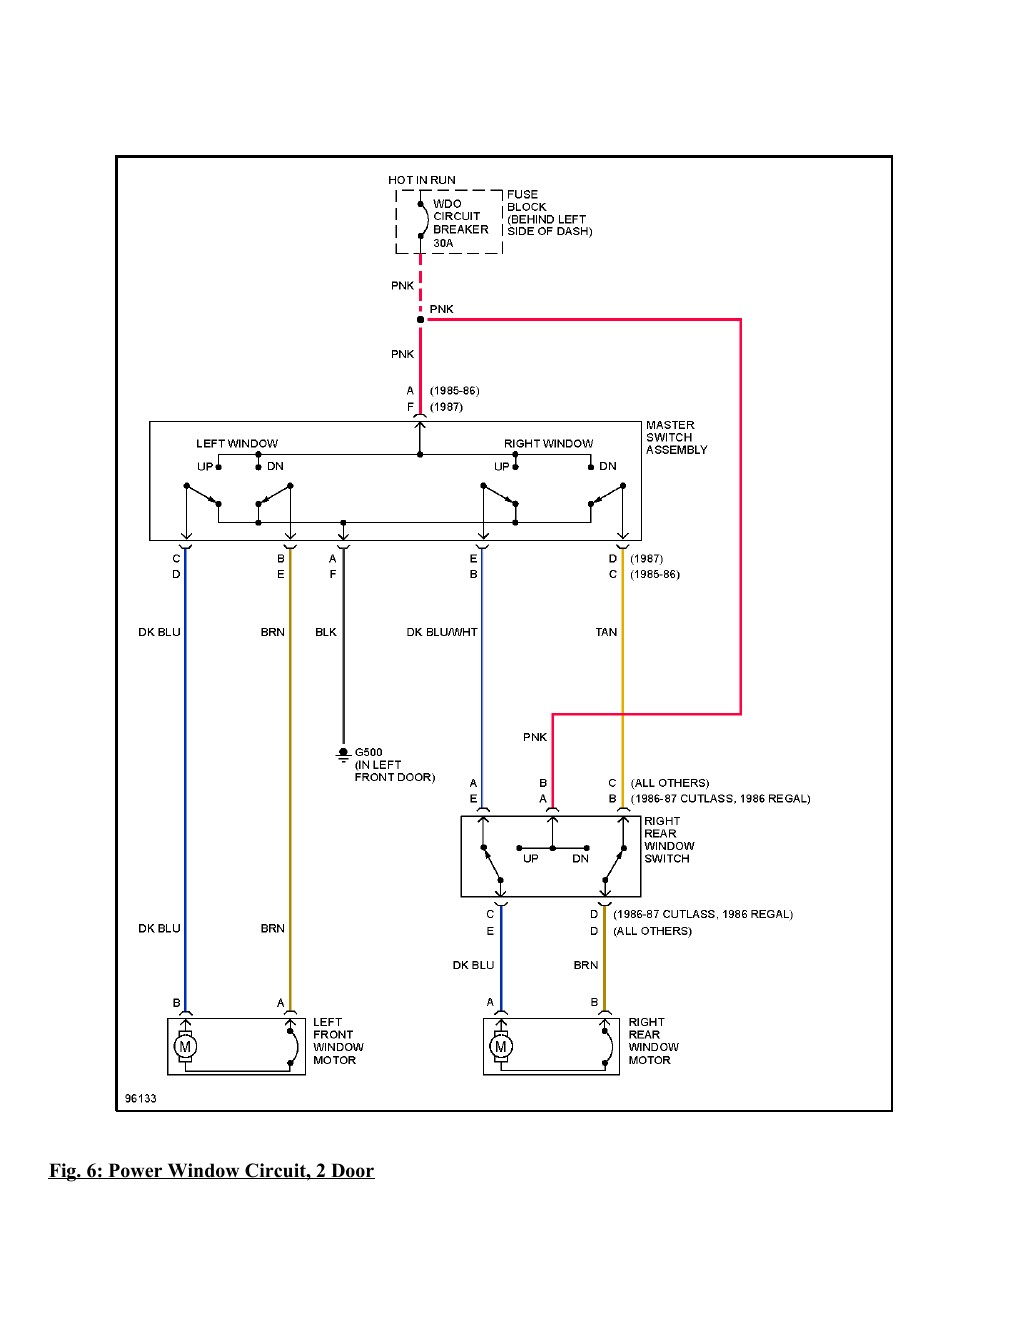 wiring diagram for a 84 monte carlo   35 wiring diagram